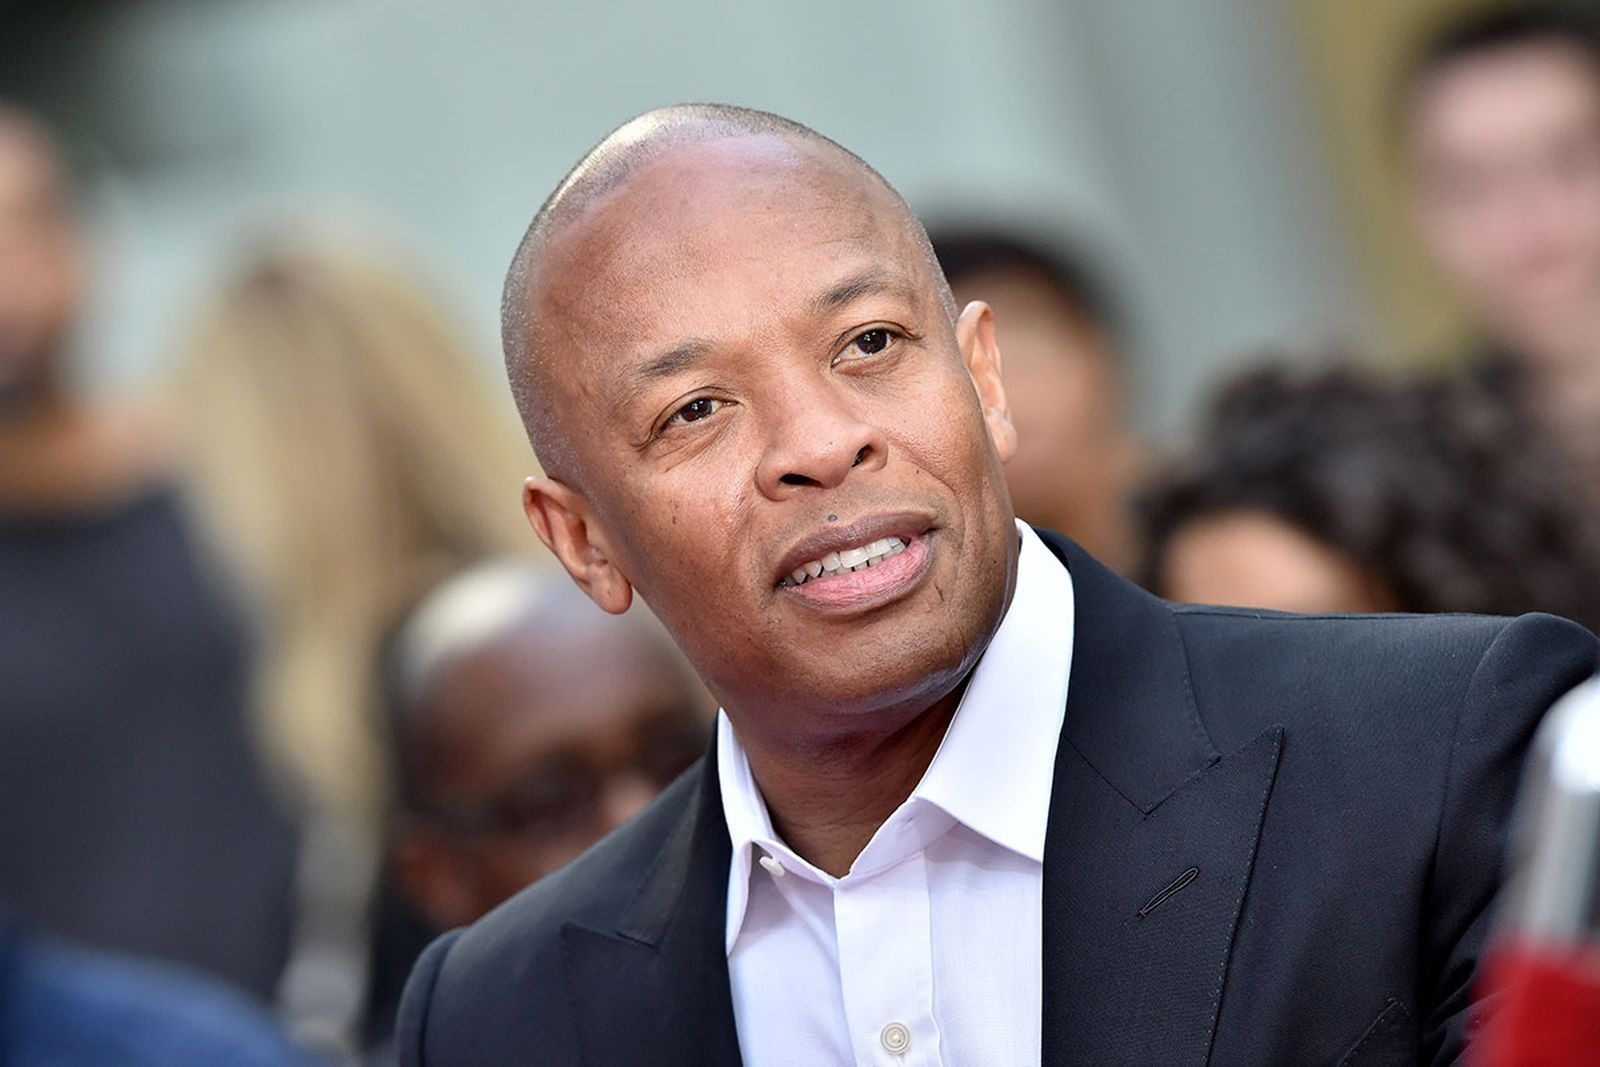 Dr. Dre attends the Hand and Footprint Ceremony honoring Quincy Jones